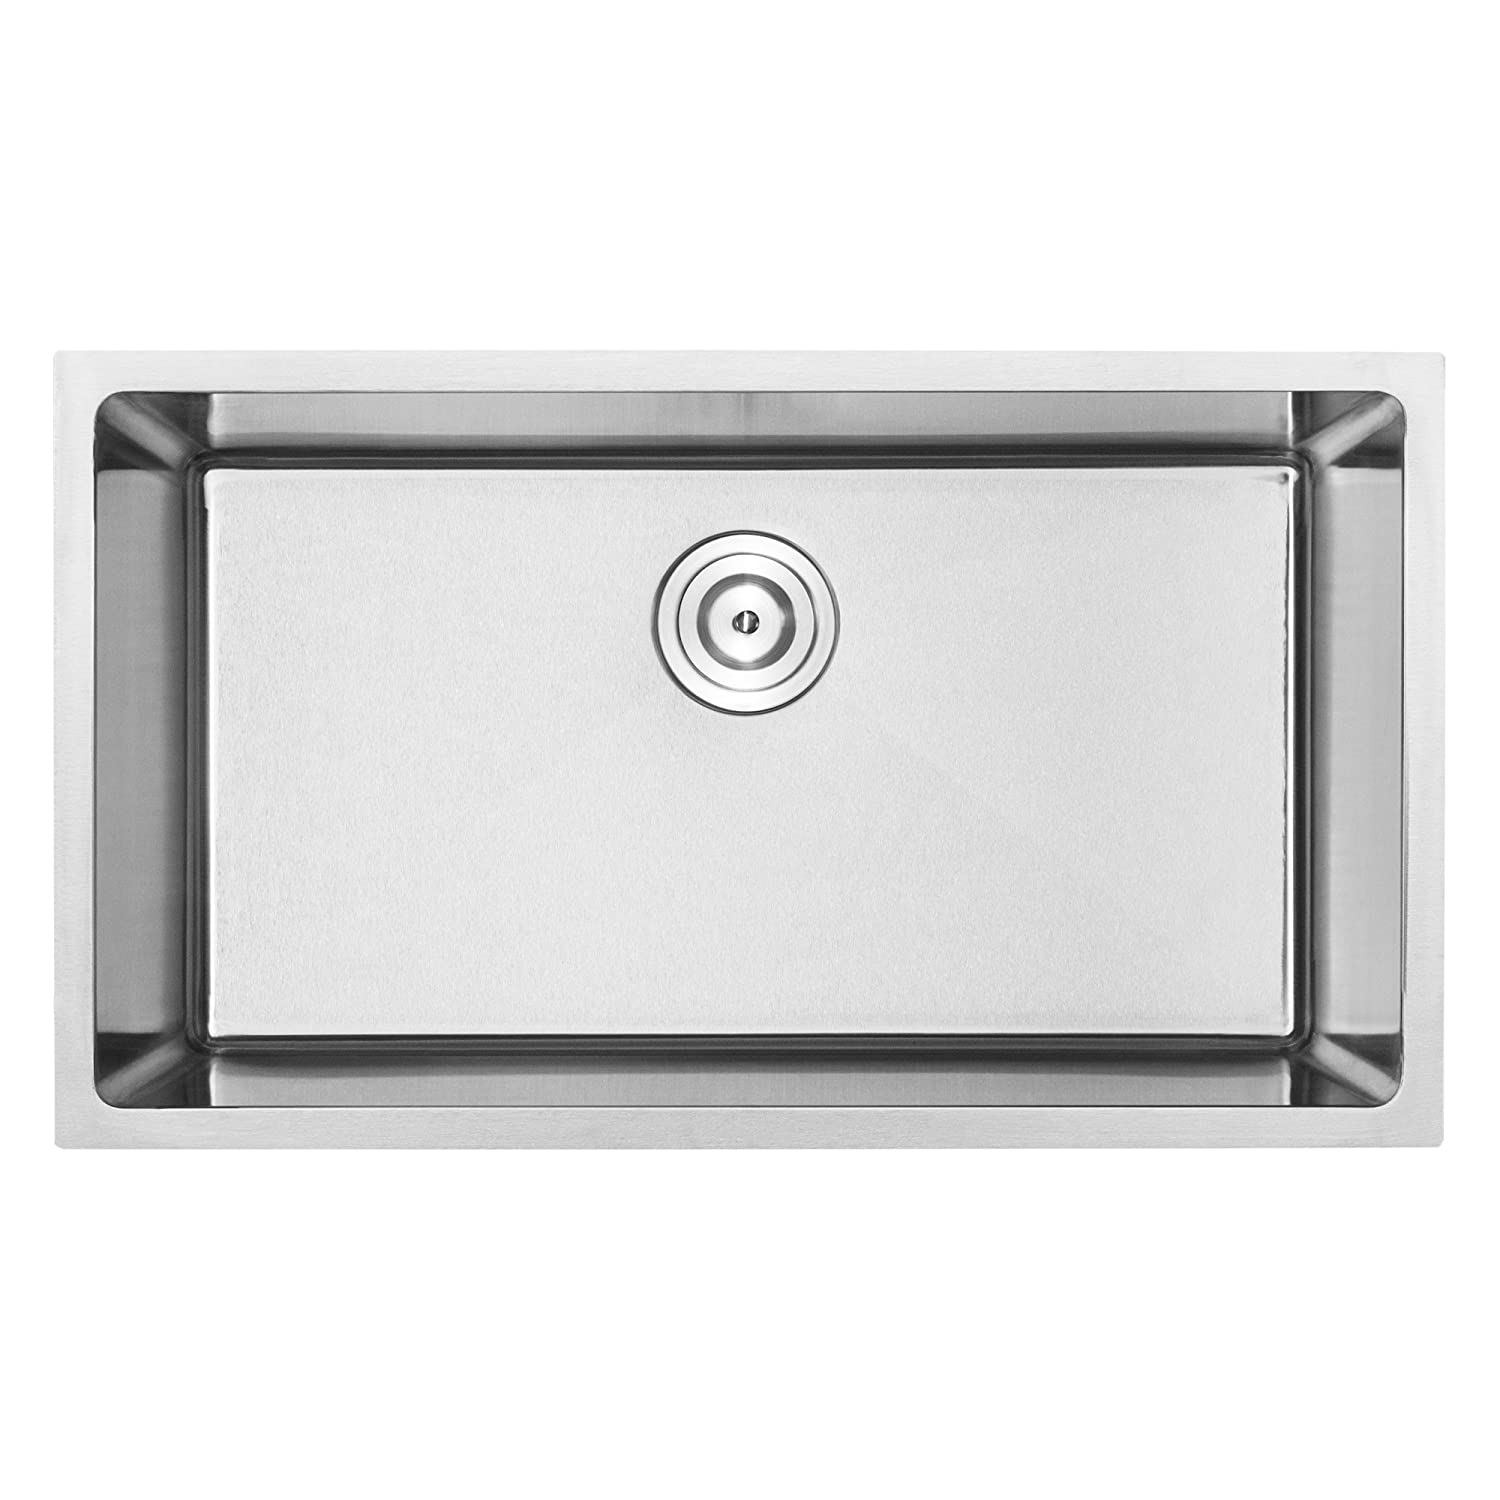 29 1 4 PLZ-25-TBASK Undermount 18 Gauge Stainless Steel Square Kitchen Sink with Tight Radius Corners